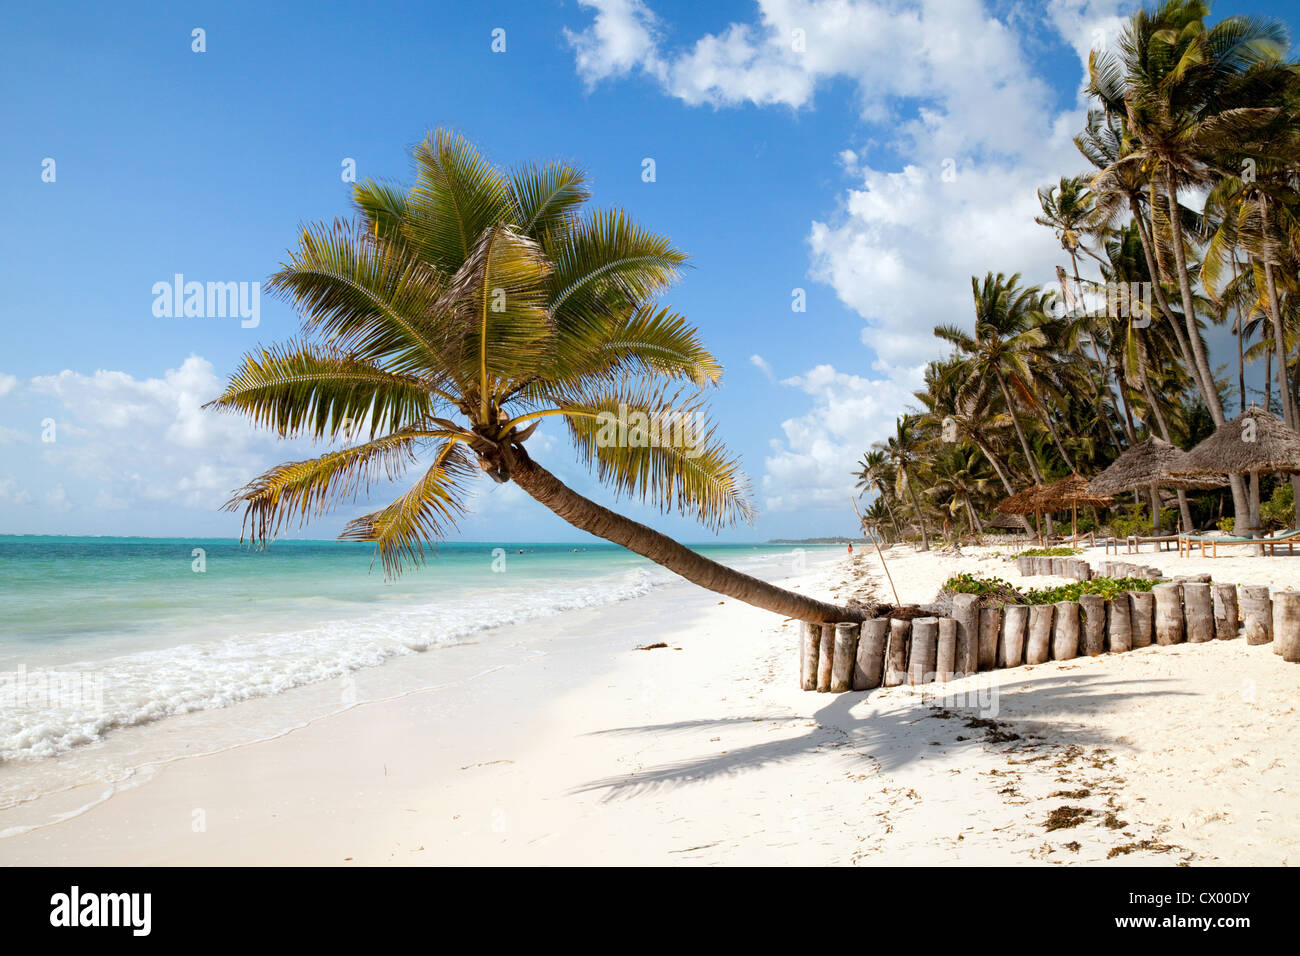 palm-tree-and-white-sands-bjewuu-beach-z